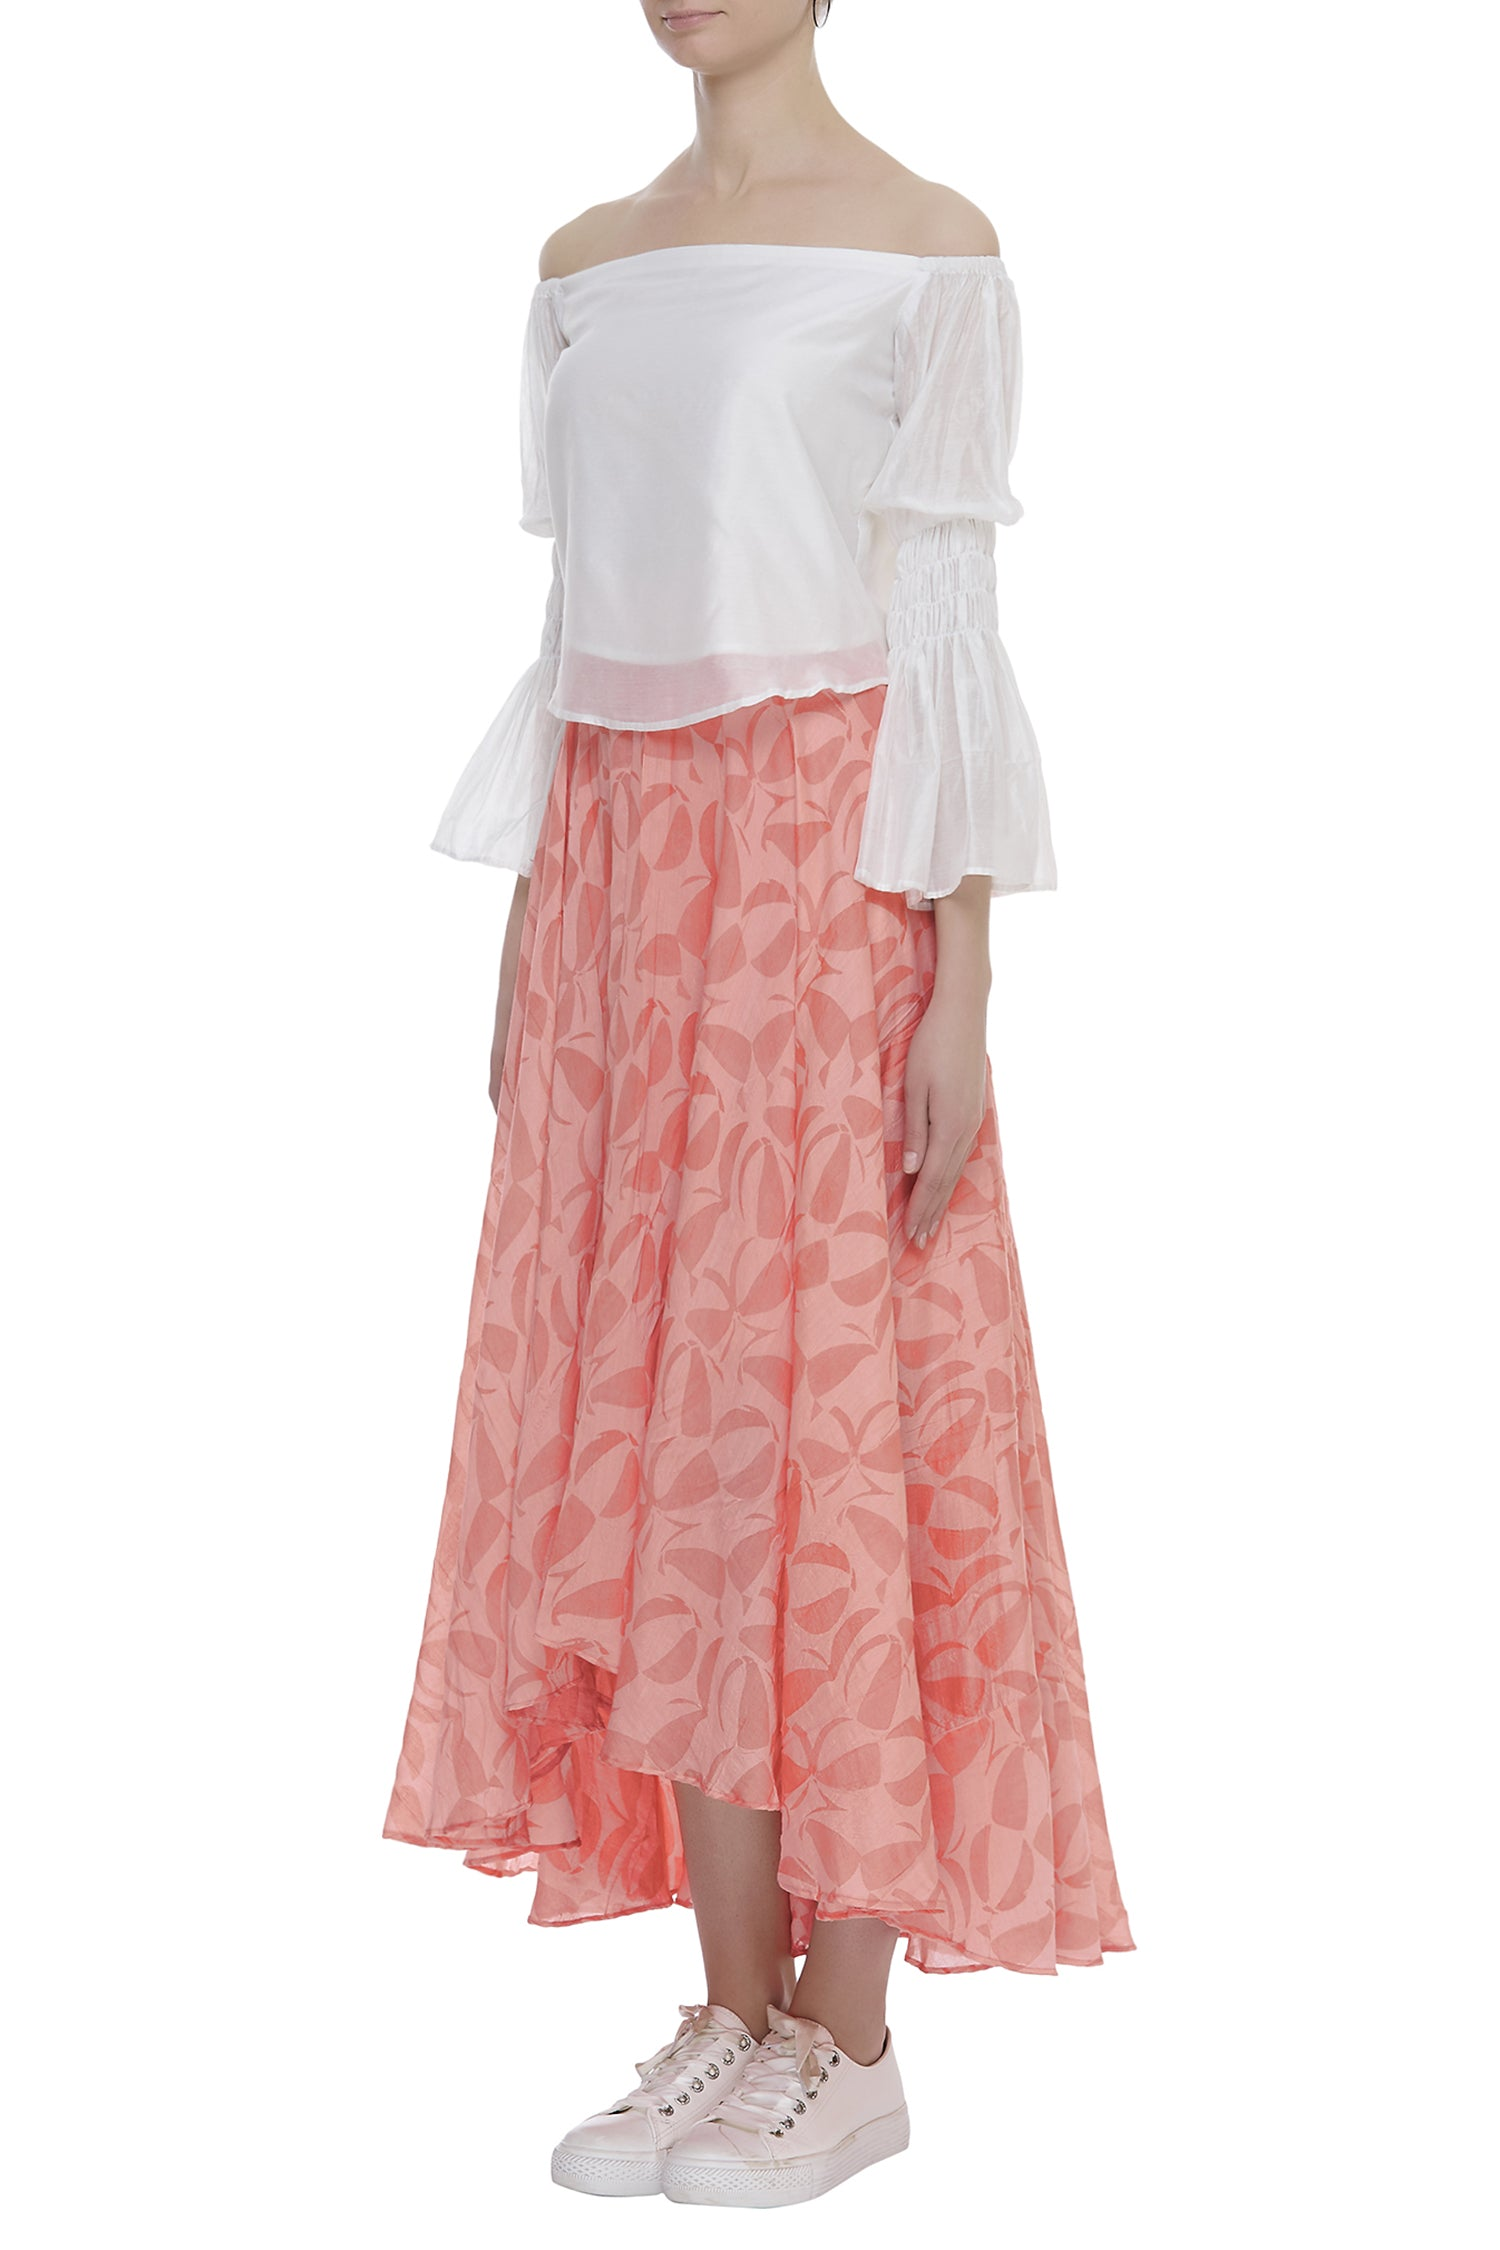 Off Shoulder Top With Asymmetric Skirt